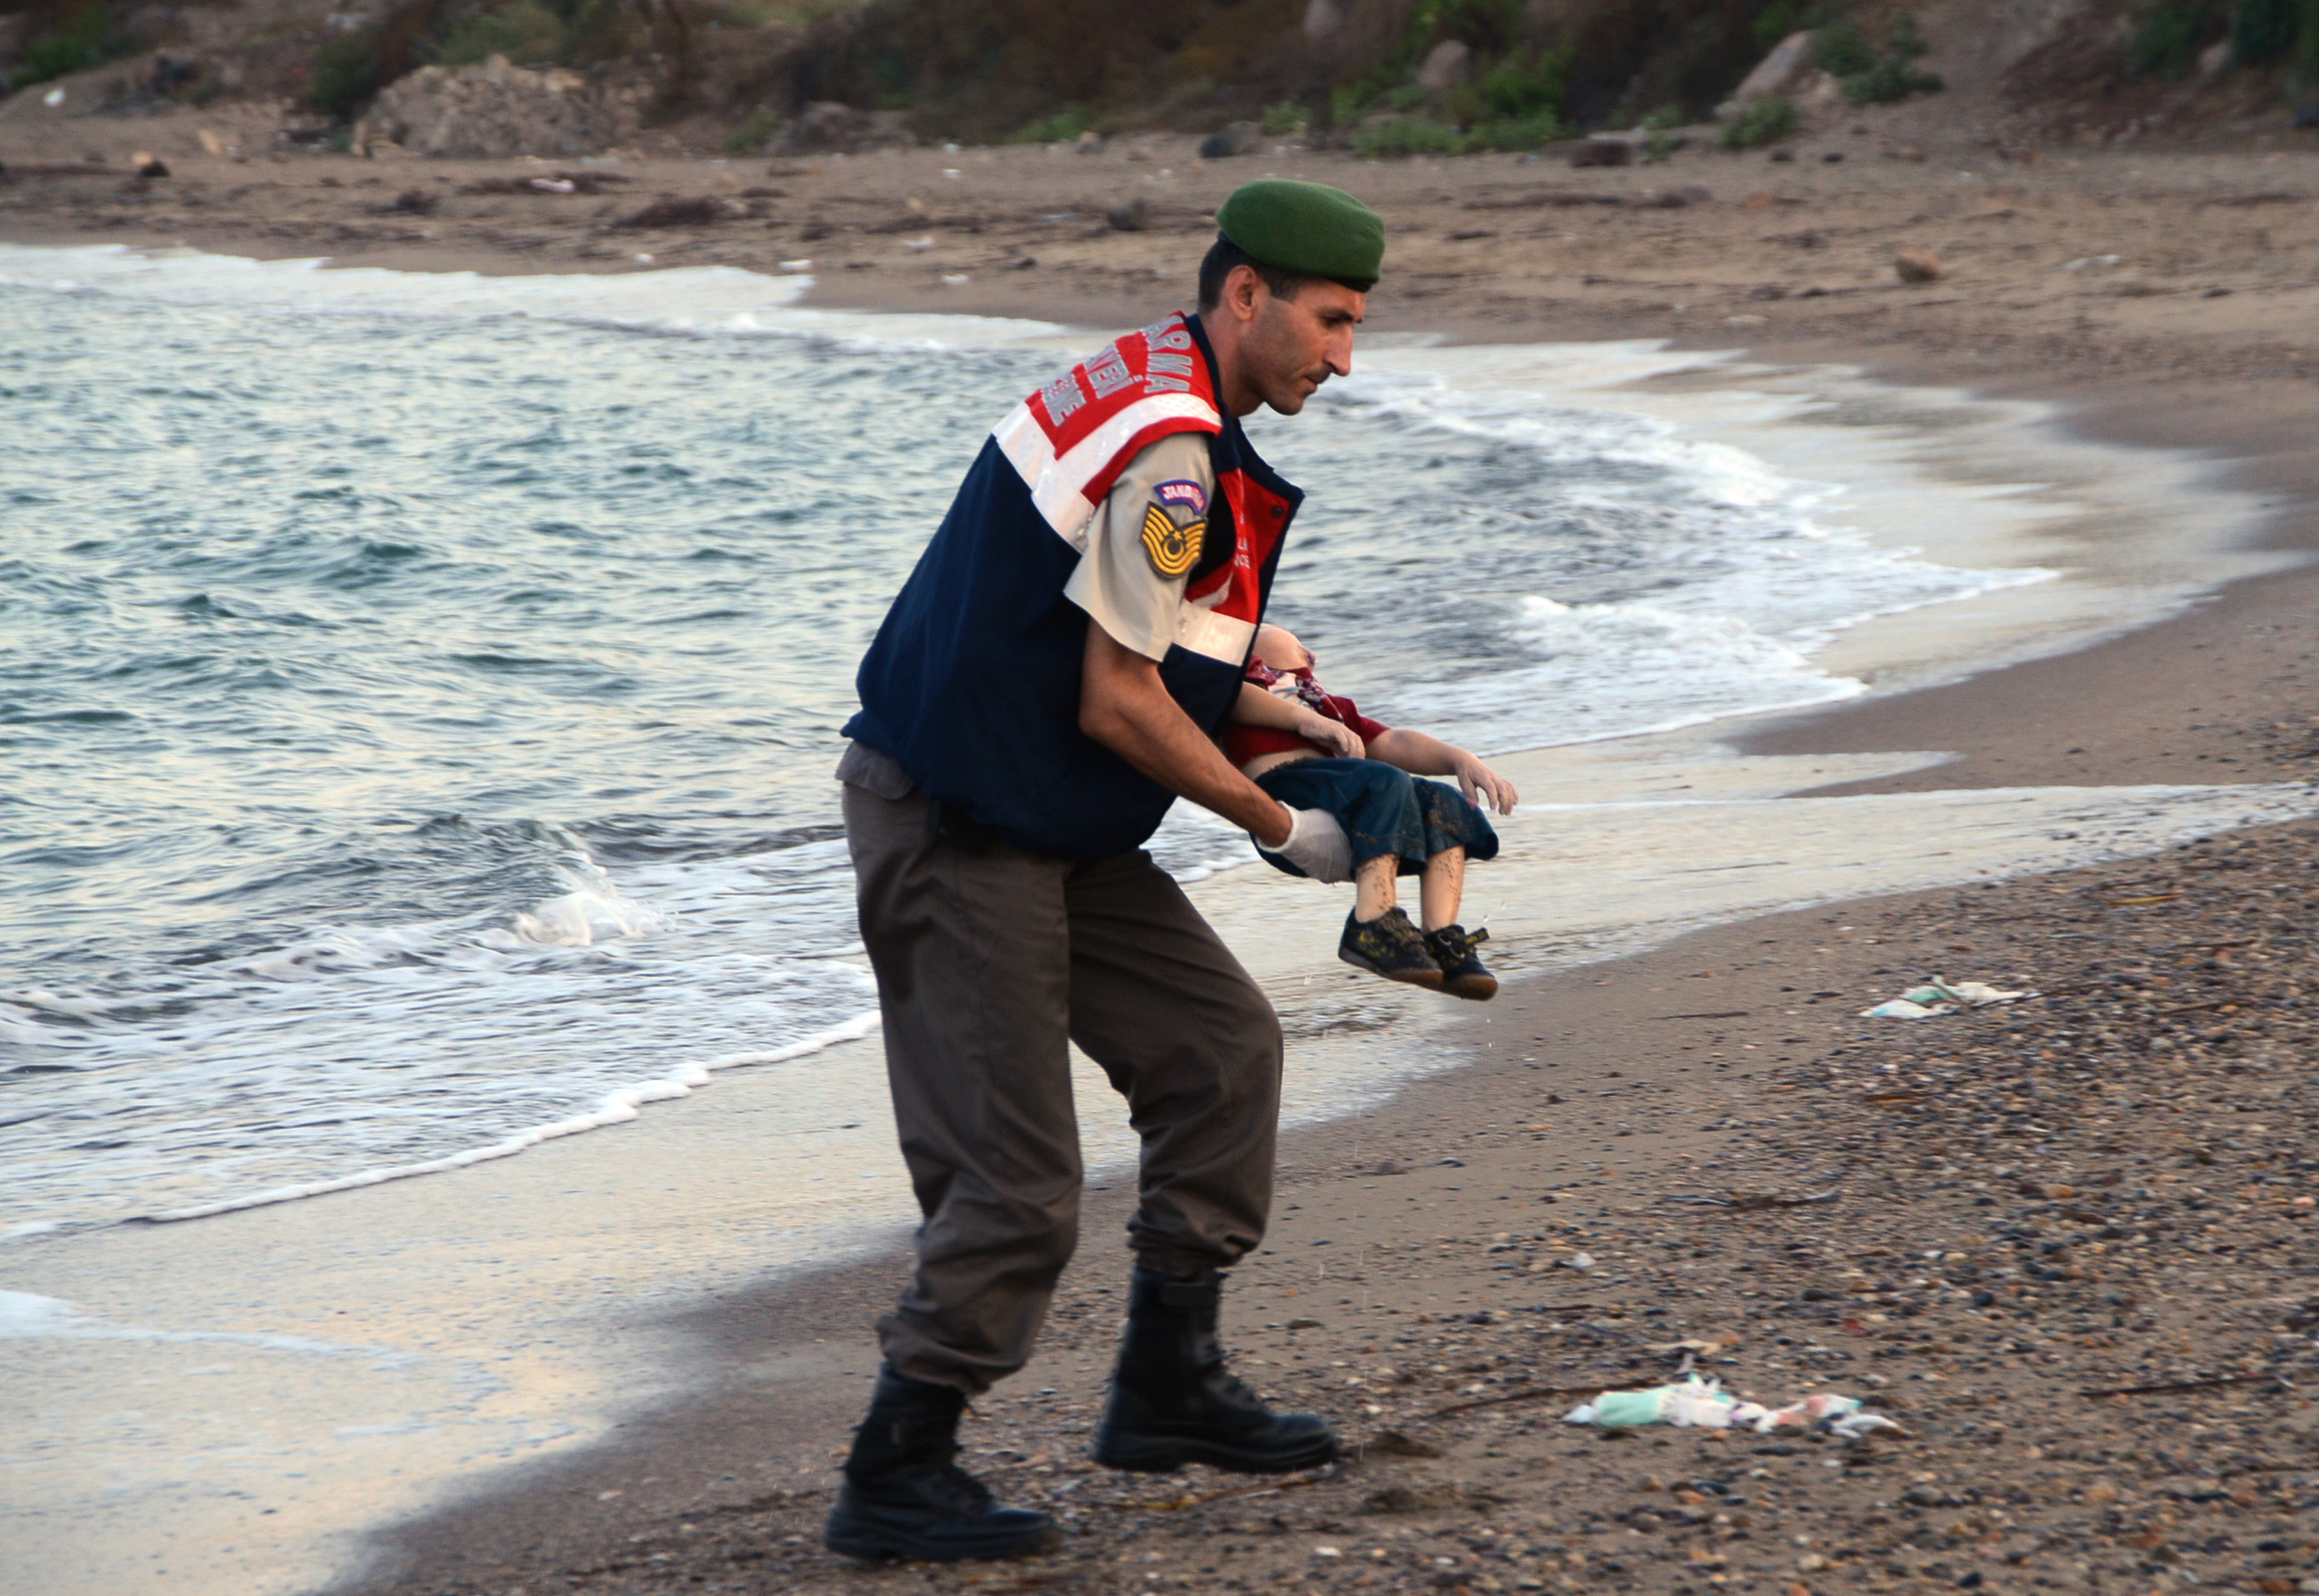 Study: What Was The Impact Of The Iconic Photo Of The Syrian Boy?